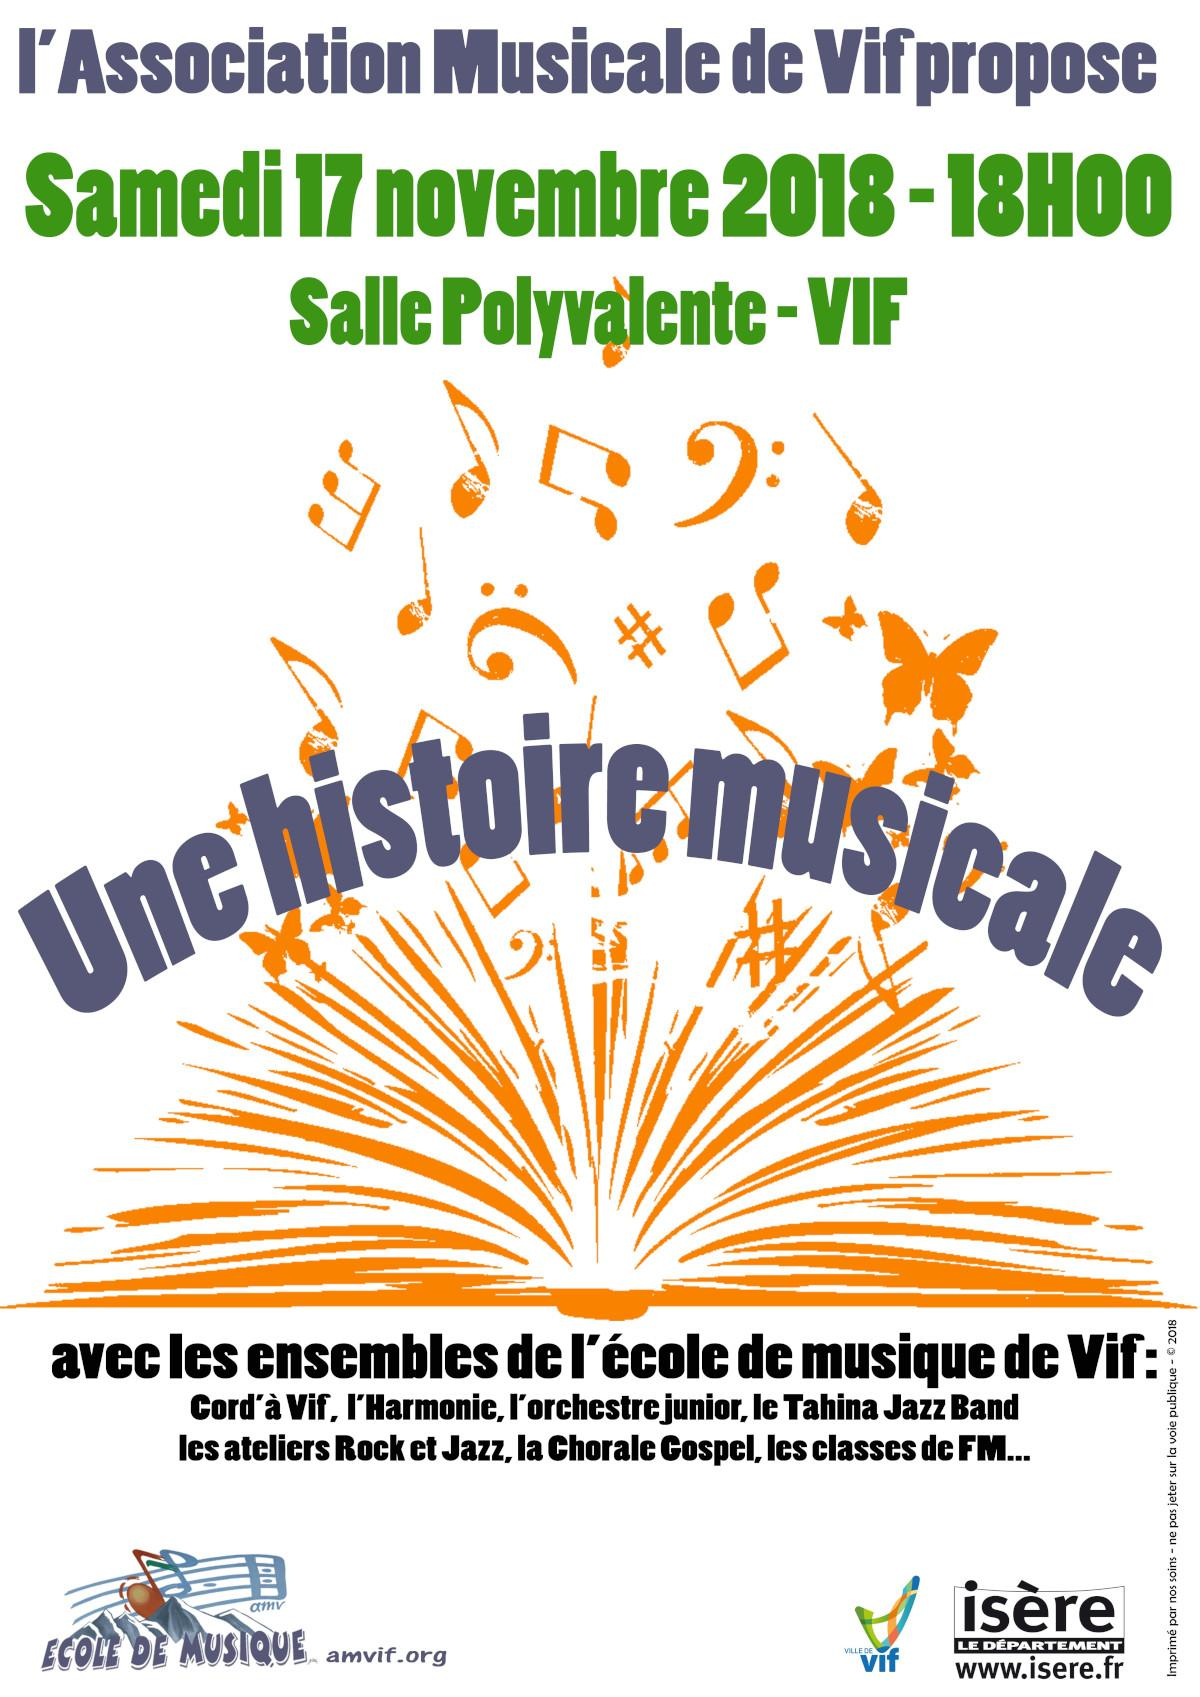 Association Musicale de Vif - Sainte Cécile 2018